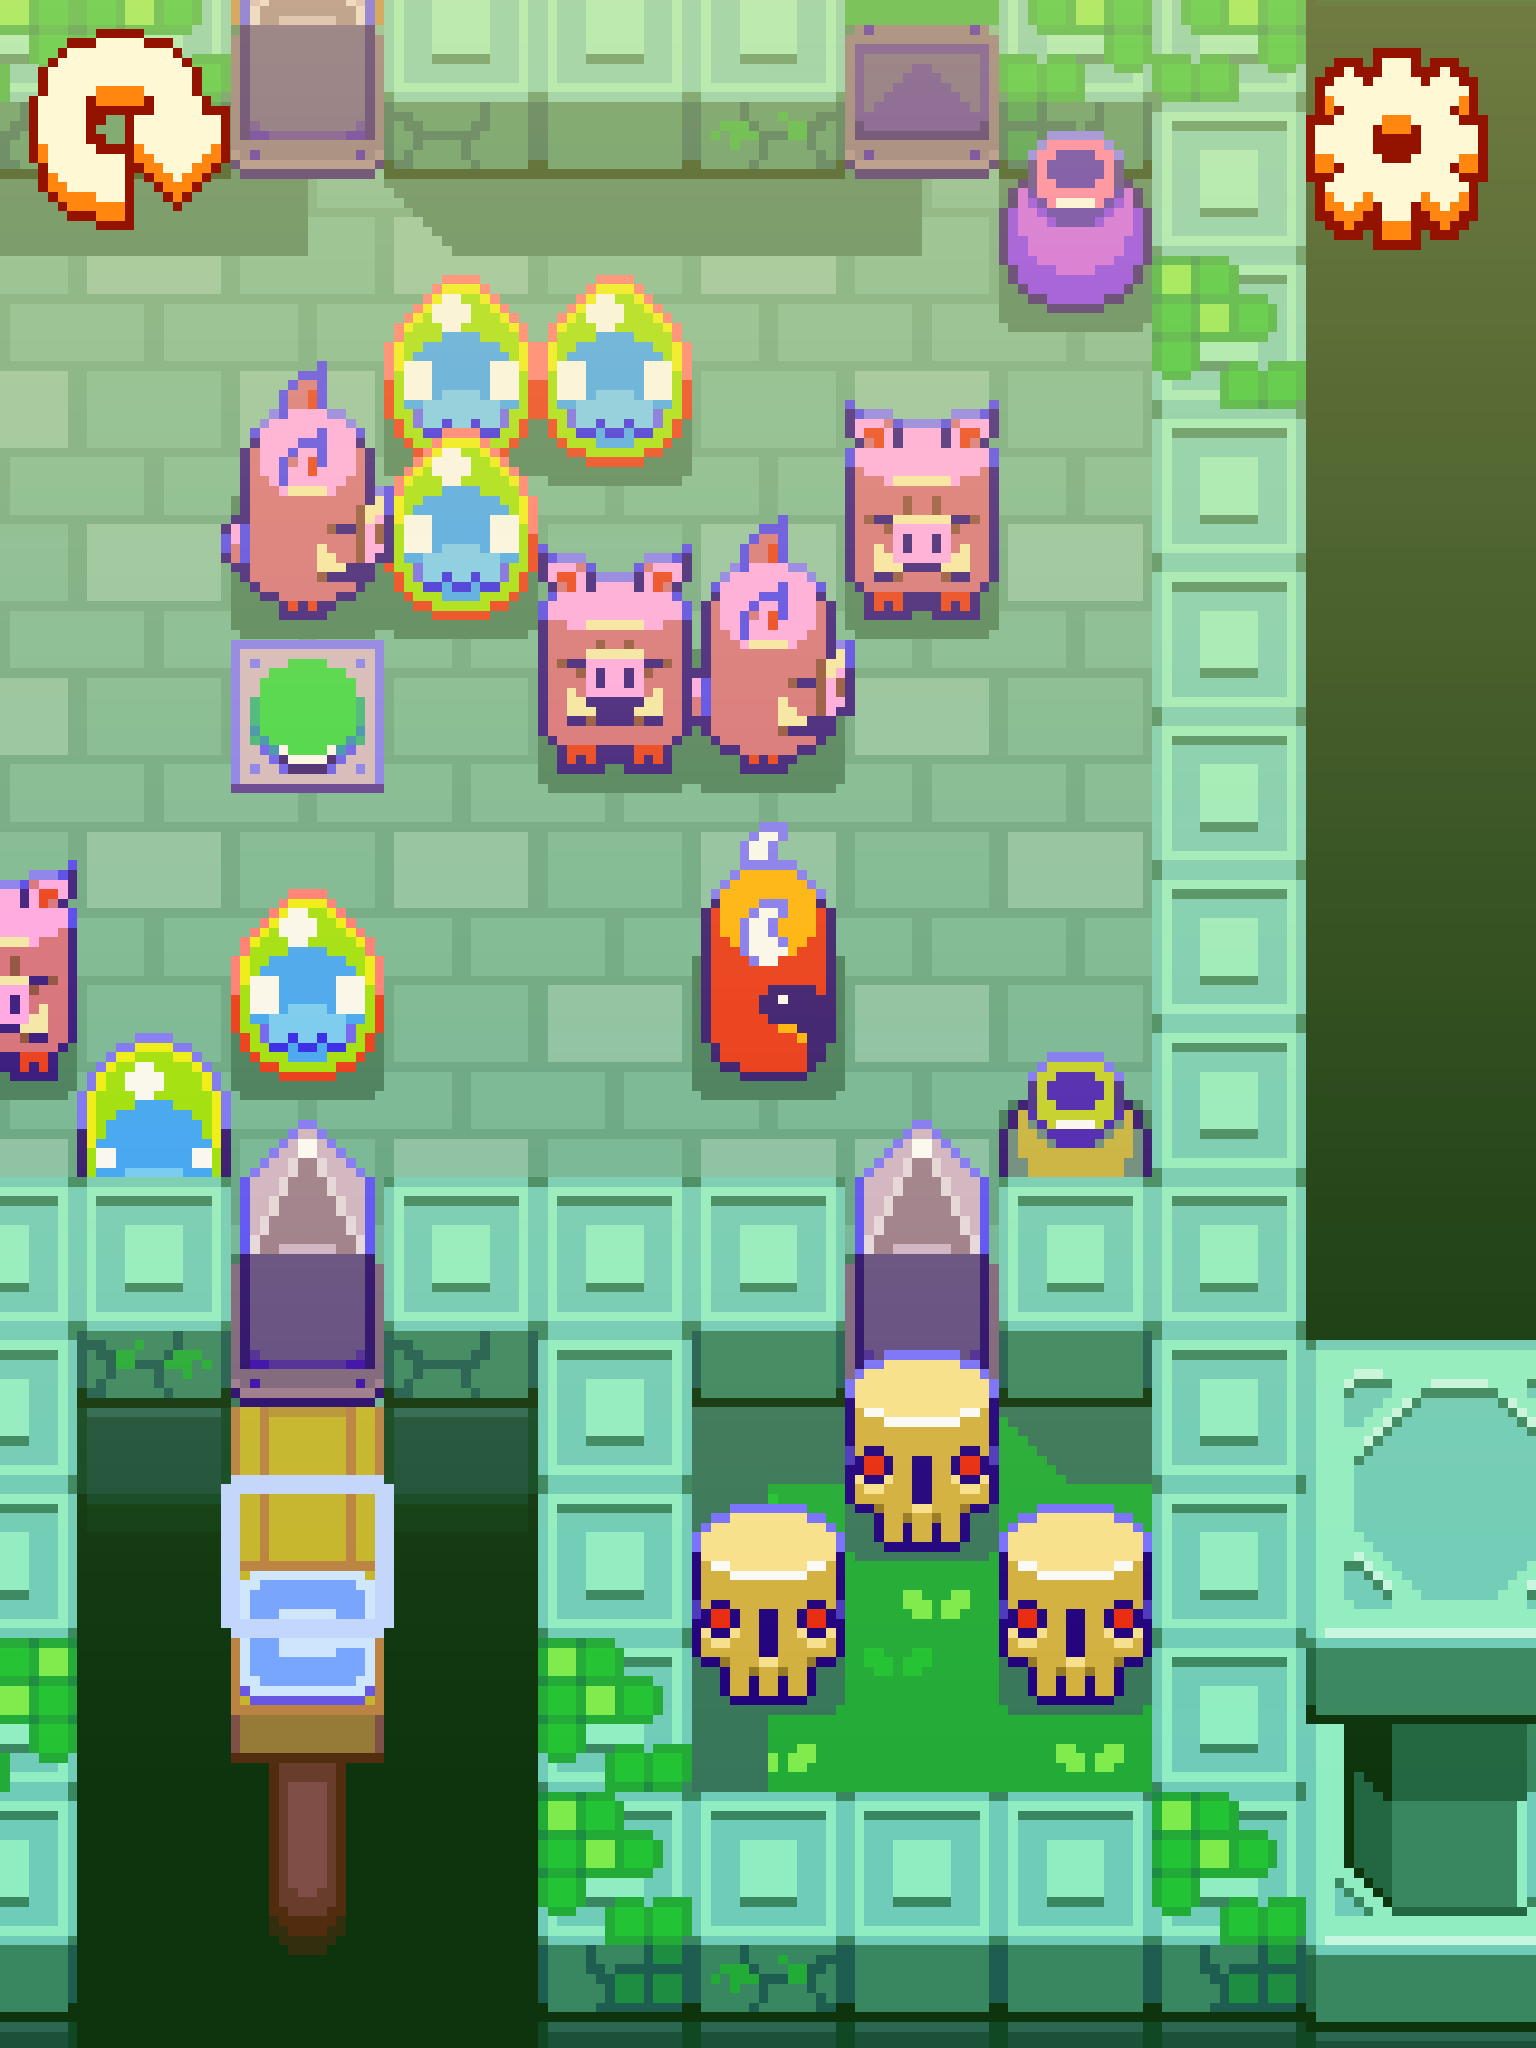 Rustbucket - Nitrome takes on the dungeon, and wins